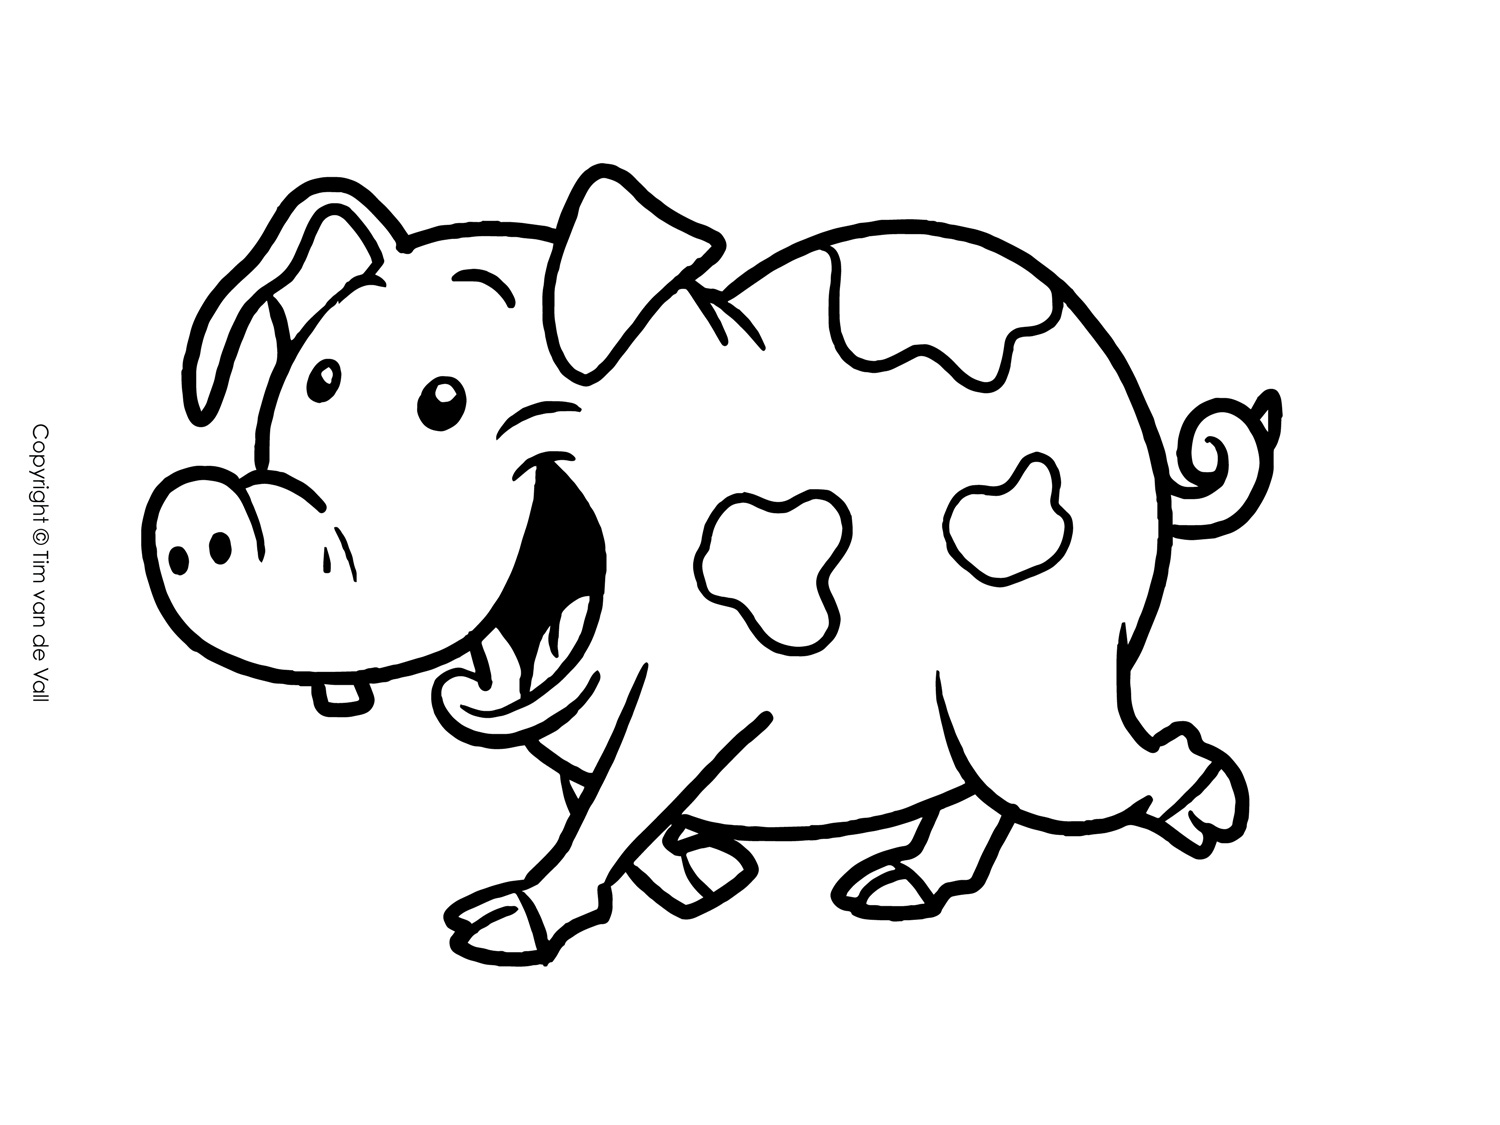 pictures of pigs to color free printable pig coloring pages for kids to pigs color pictures of